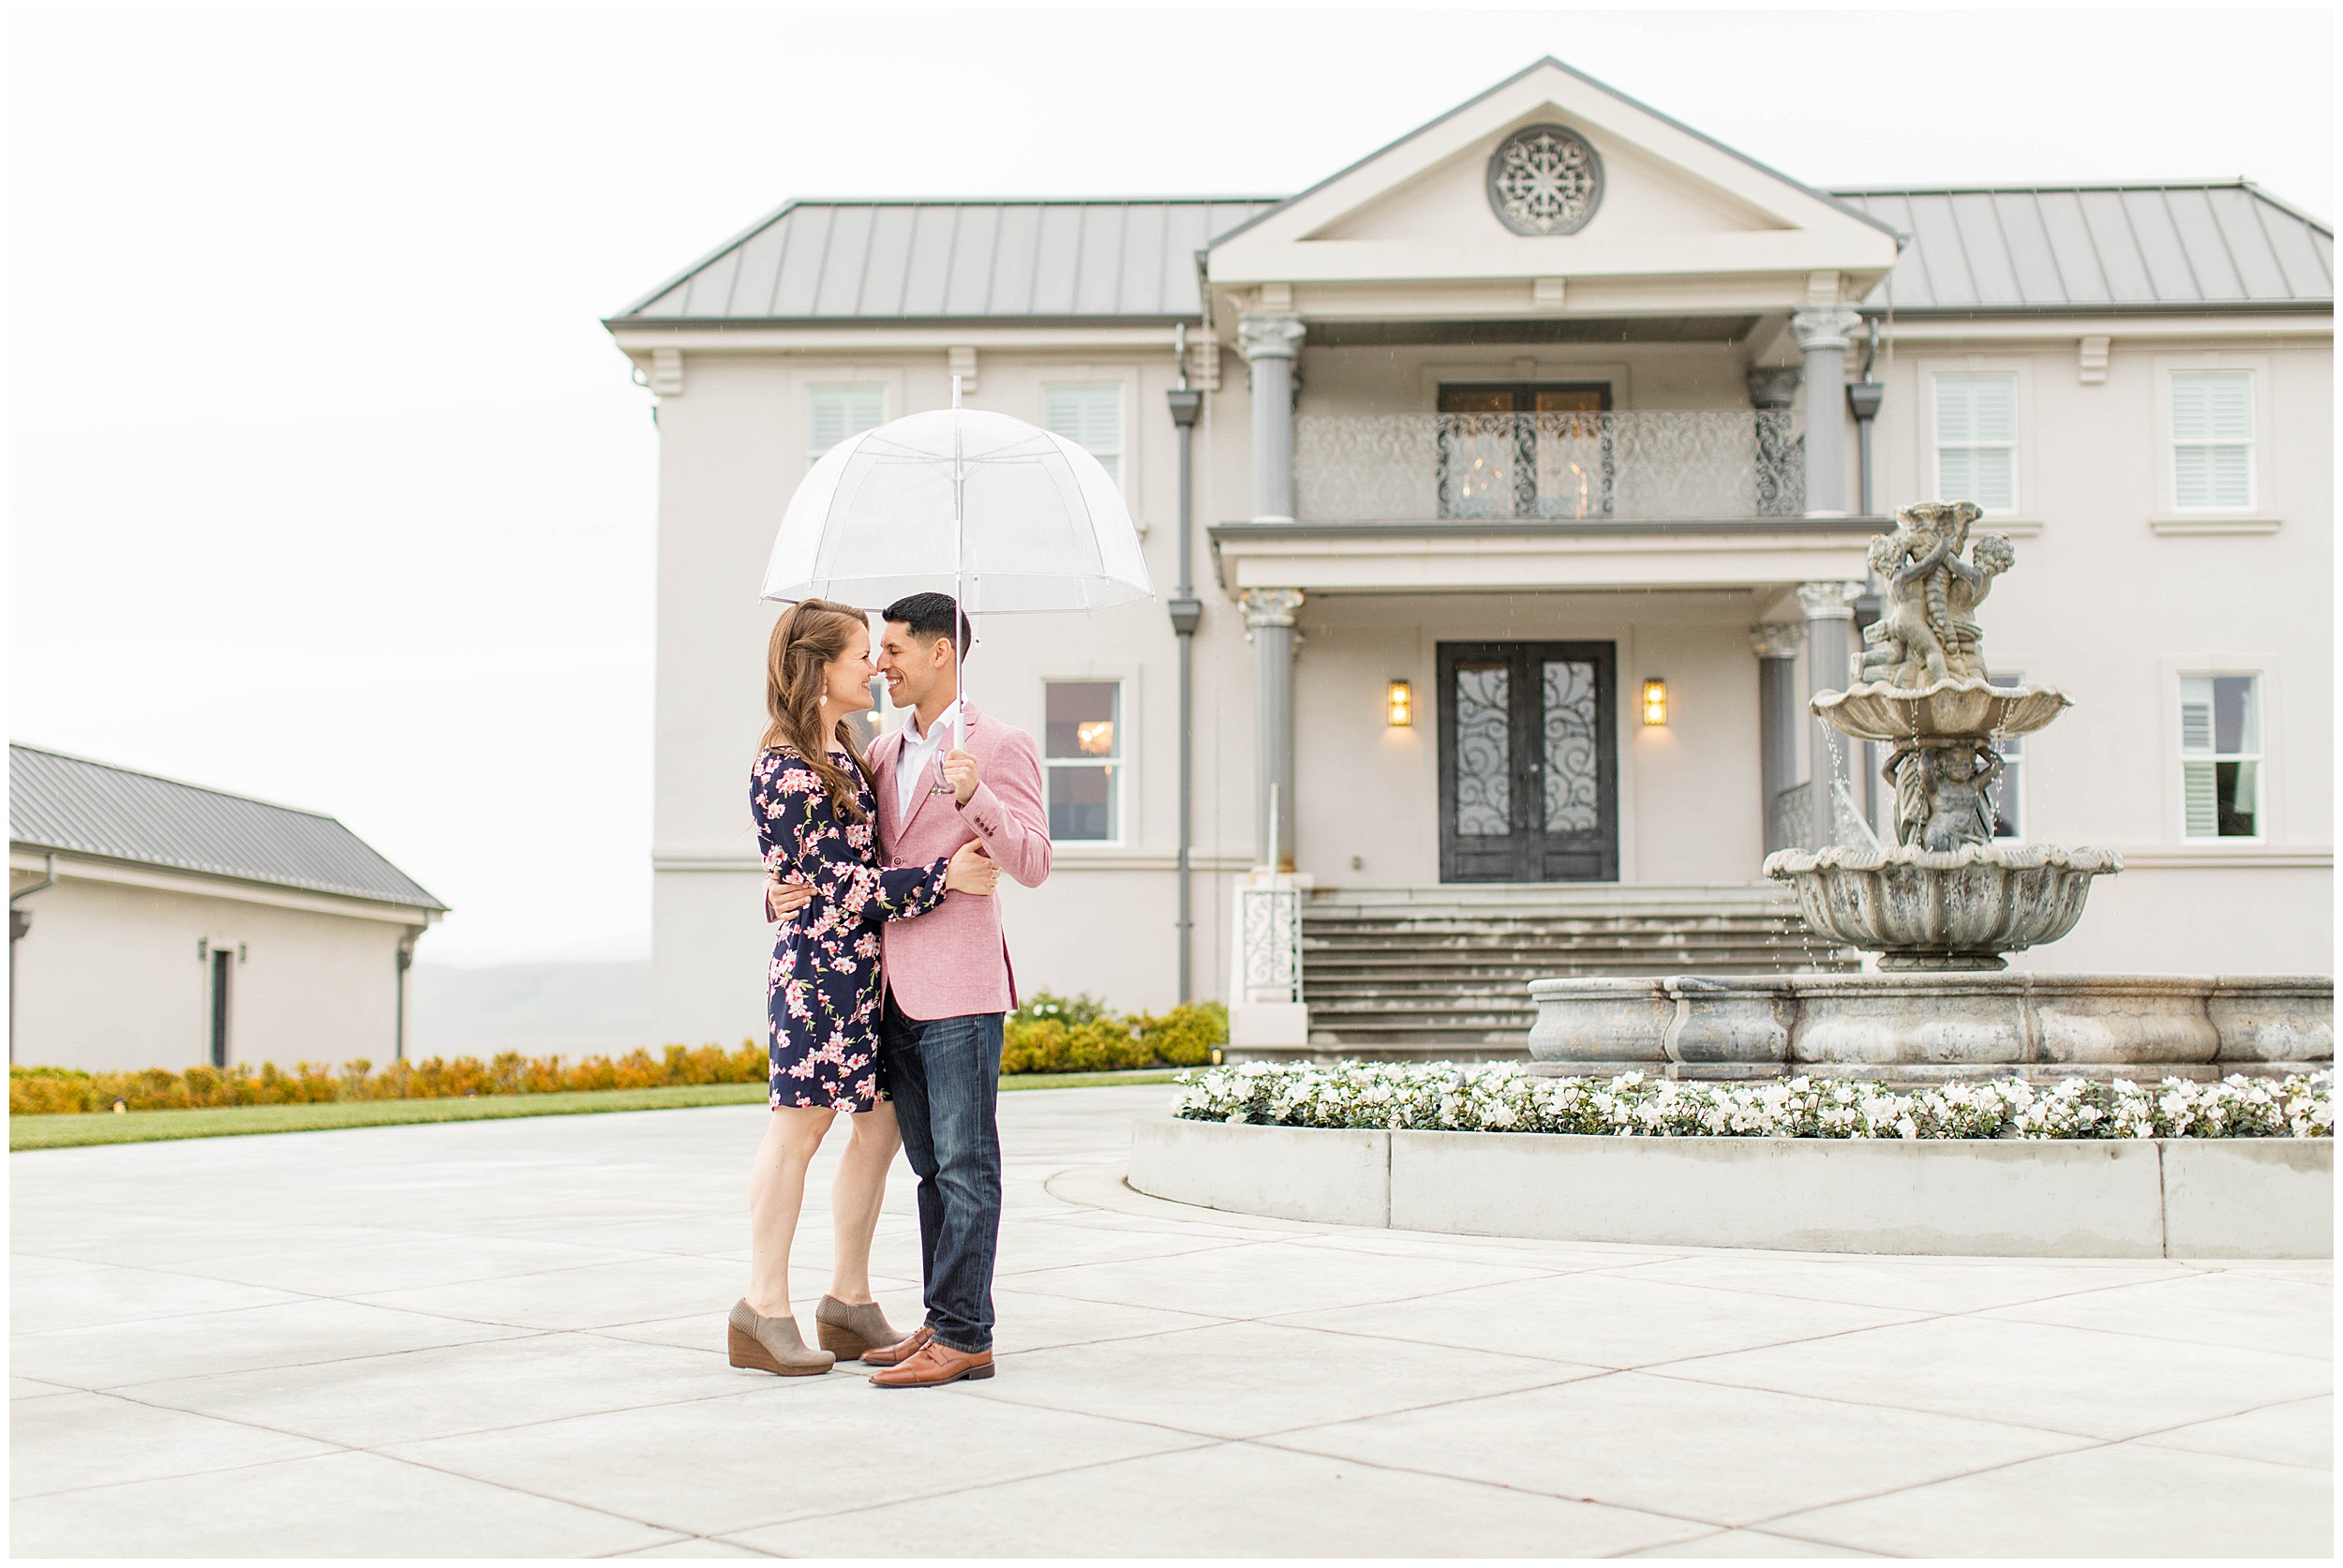 Willow Heights Mansion-San Jose Wedding Photographer-Engagement Session-Angela Sue Photography_0009.jpg